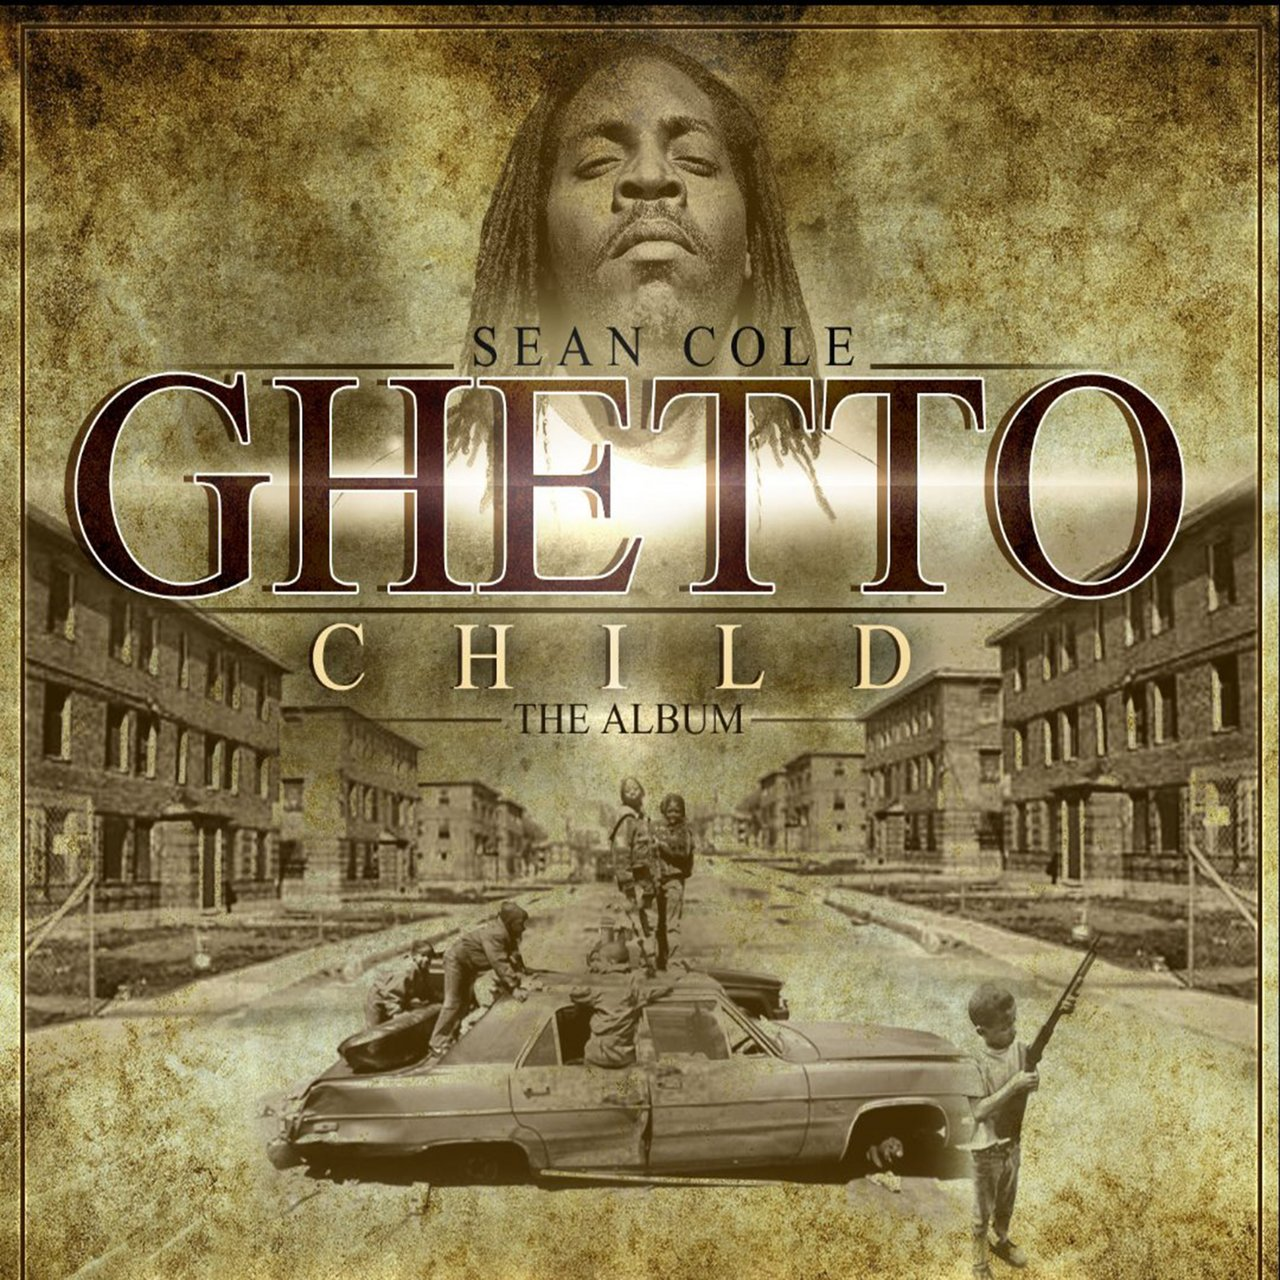 http://rap.3dn.ru/00000c/00-Sean_Cole-Ghetto_Child-front.jpg